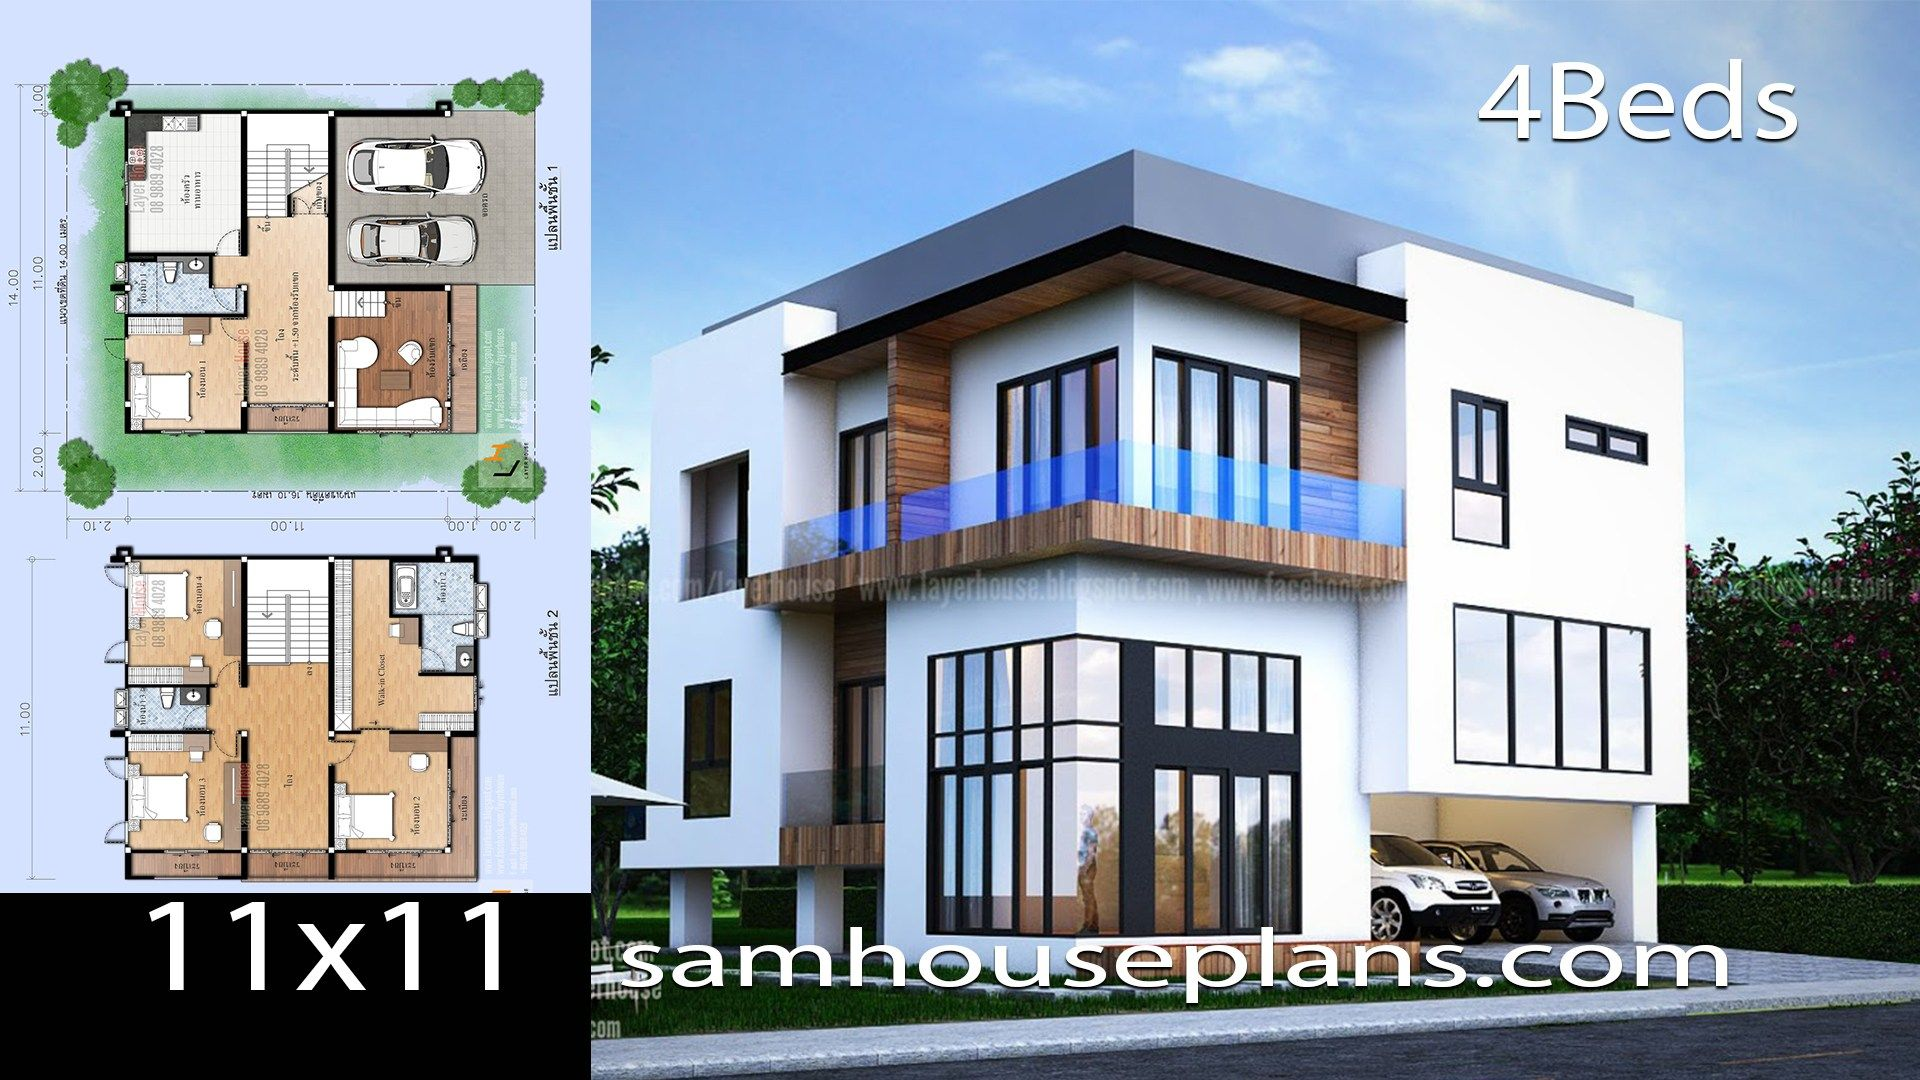 House Plans 11x11 With 4 Bedroomsinformation You Should Know Of The Model 2p60living Area Of The B In 2020 House Plans House Front Design House Architecture Design